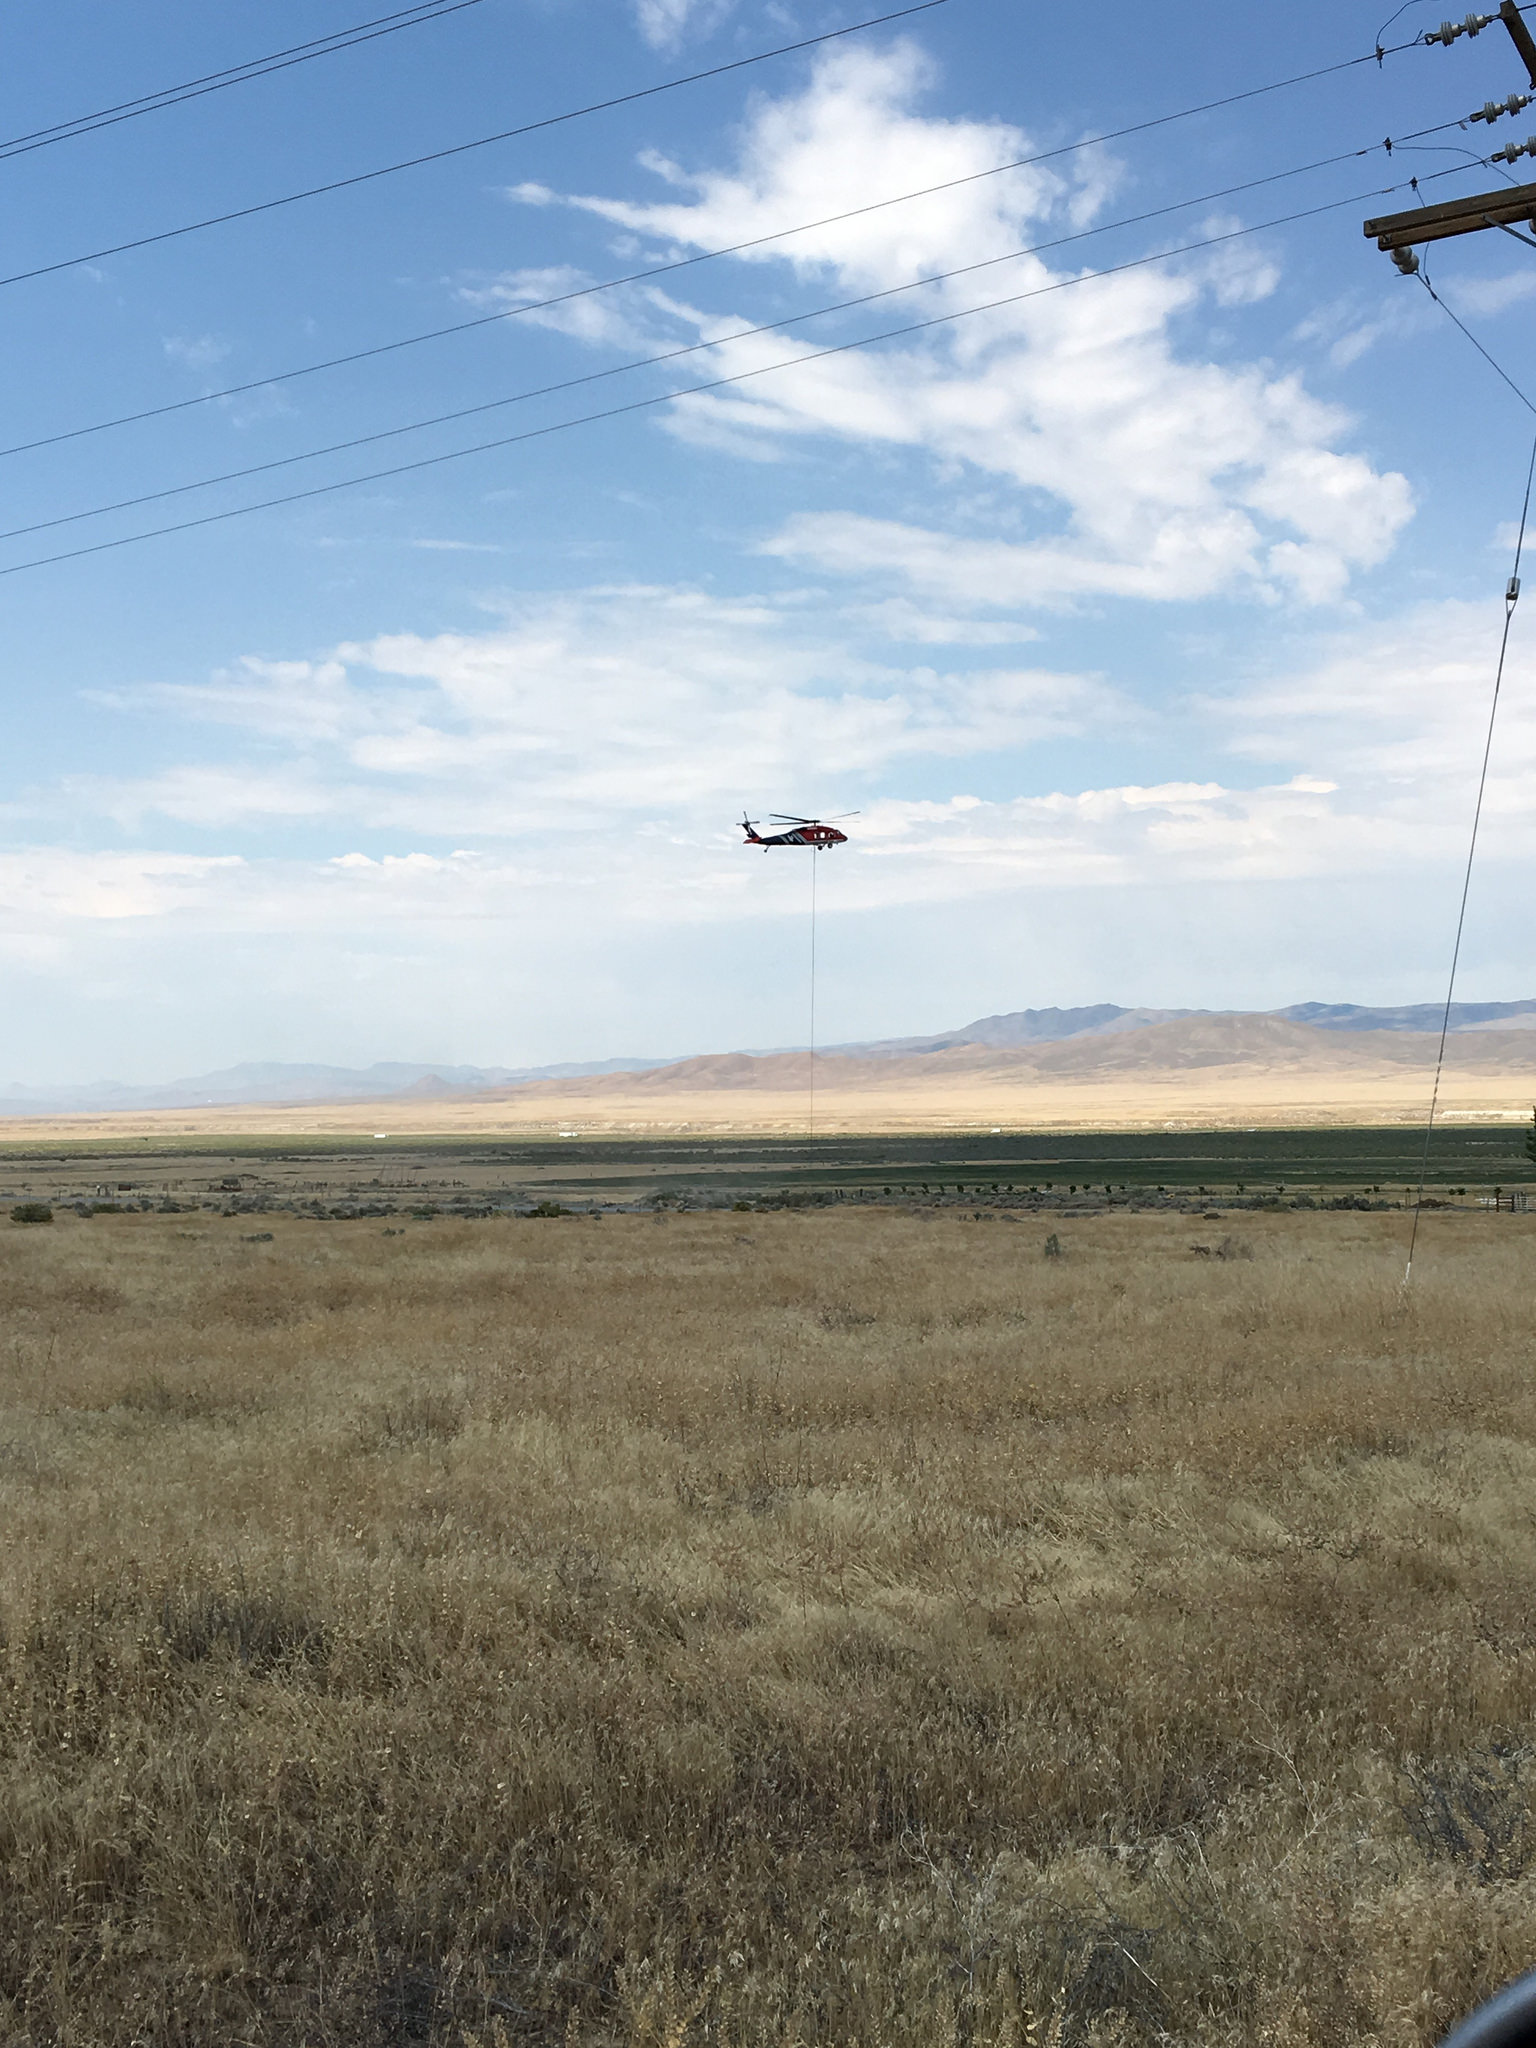 limerick-fire-that-started-july-3-2017-15-miles-northeast-of-lovelock-nevada_35653381021_o